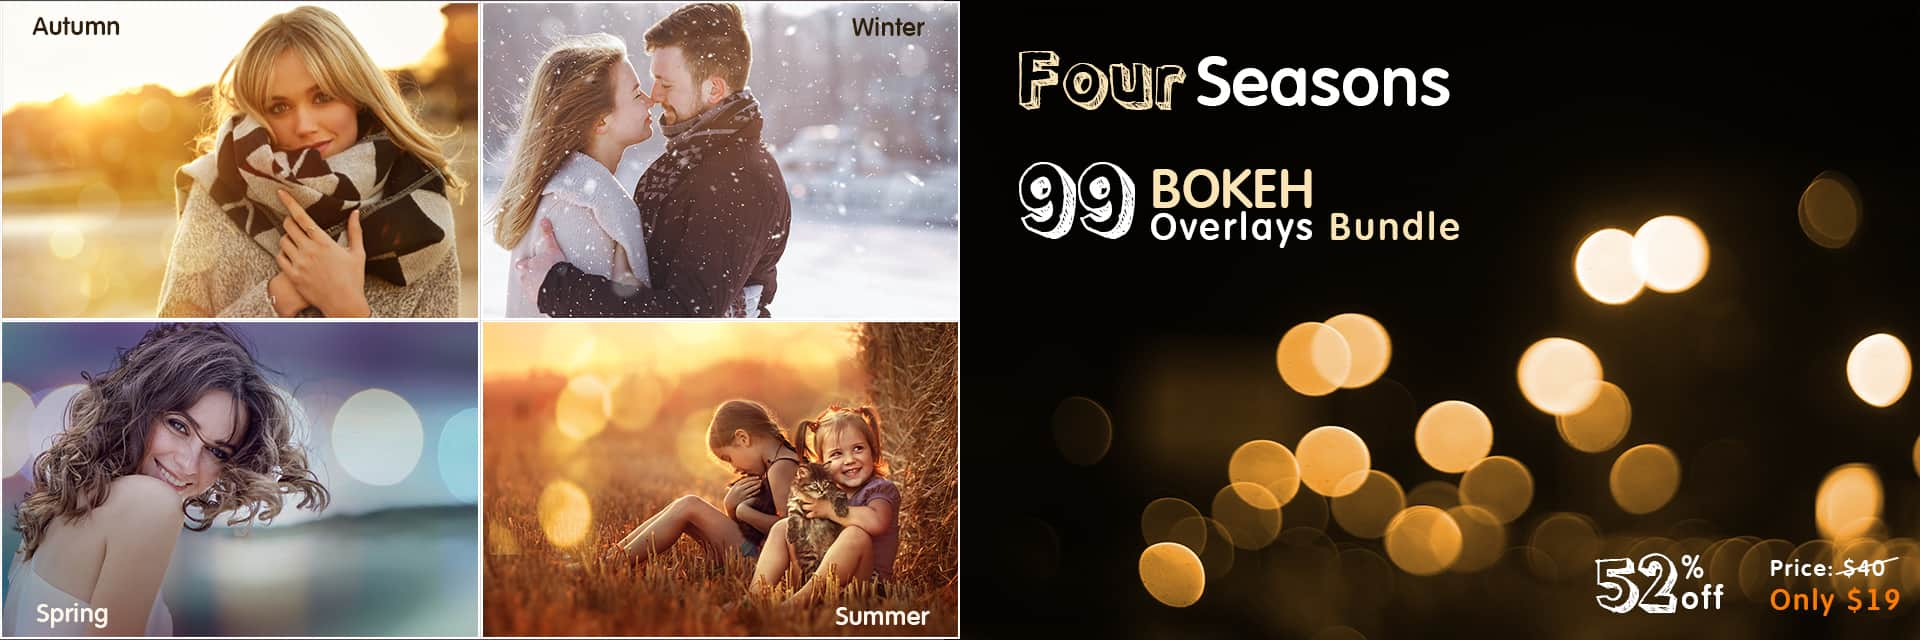 Four Seasons Bokeh bundle slider -